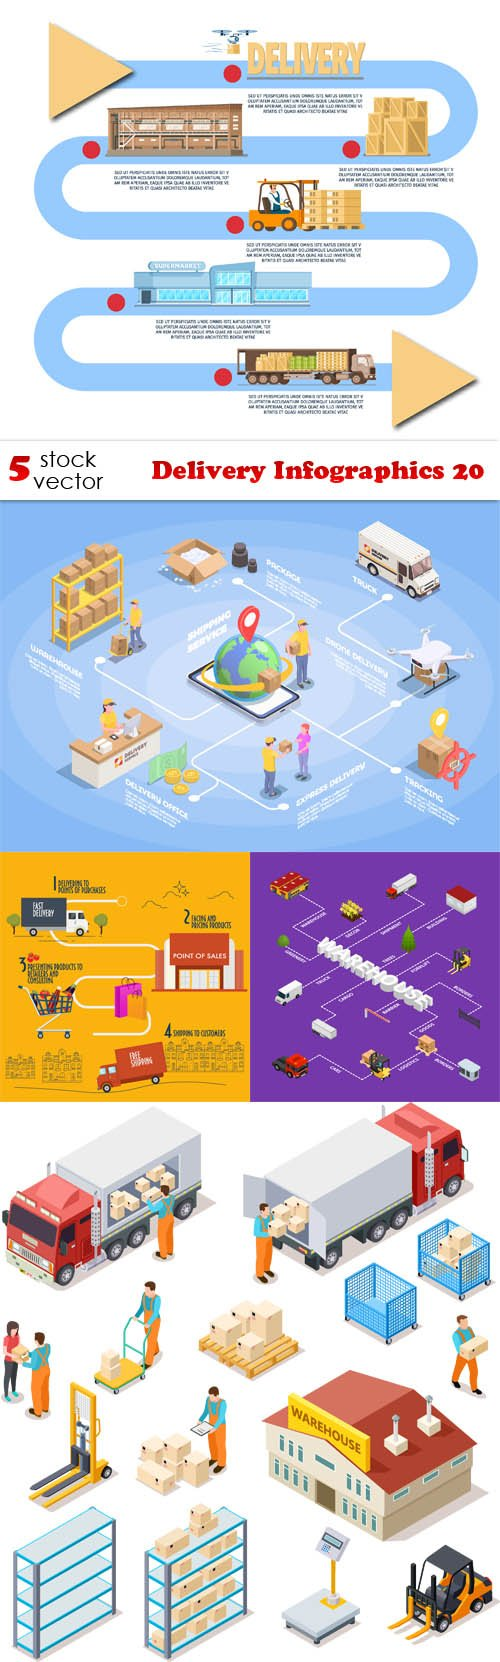 Vectors - Delivery Infographics 20